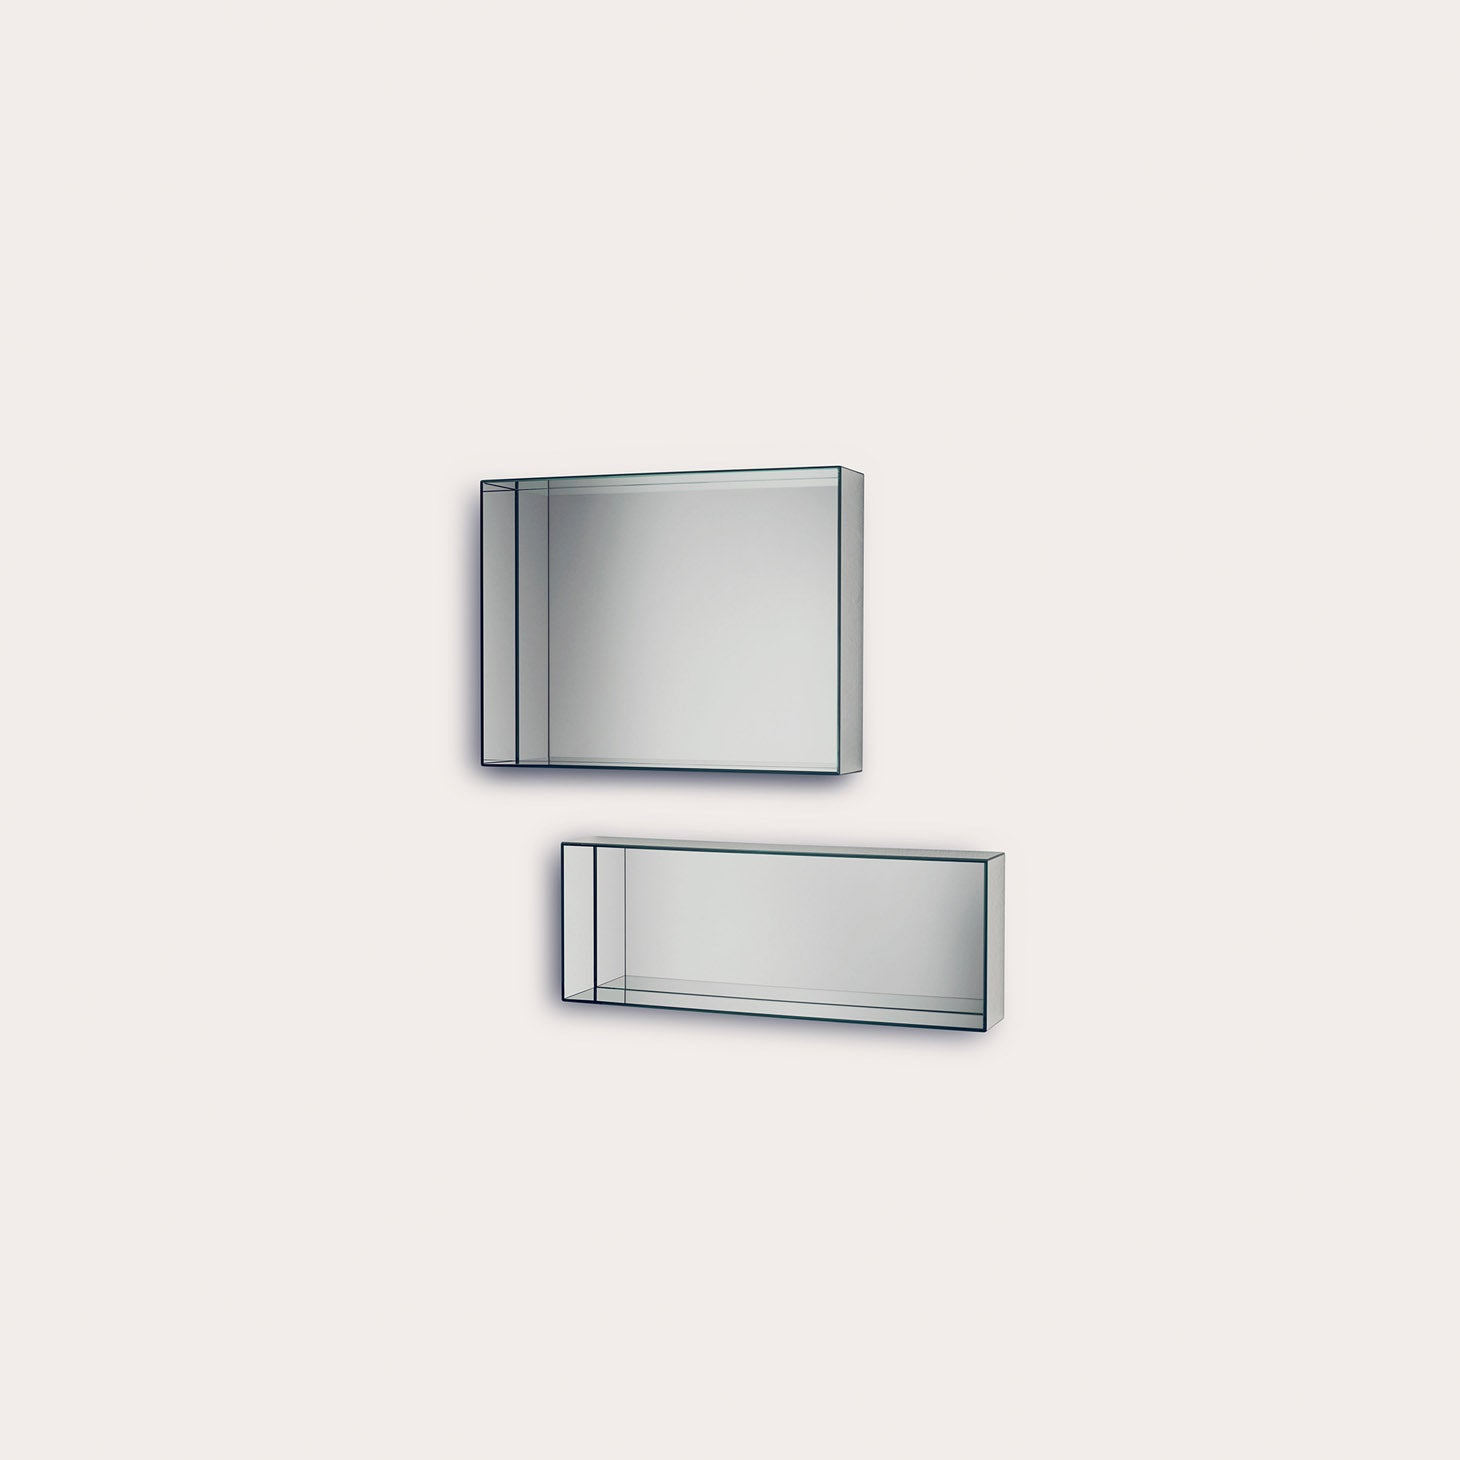 Mirror Mirror Accessories Jasper Morrison Designer Furniture Sku: 288-100-10101